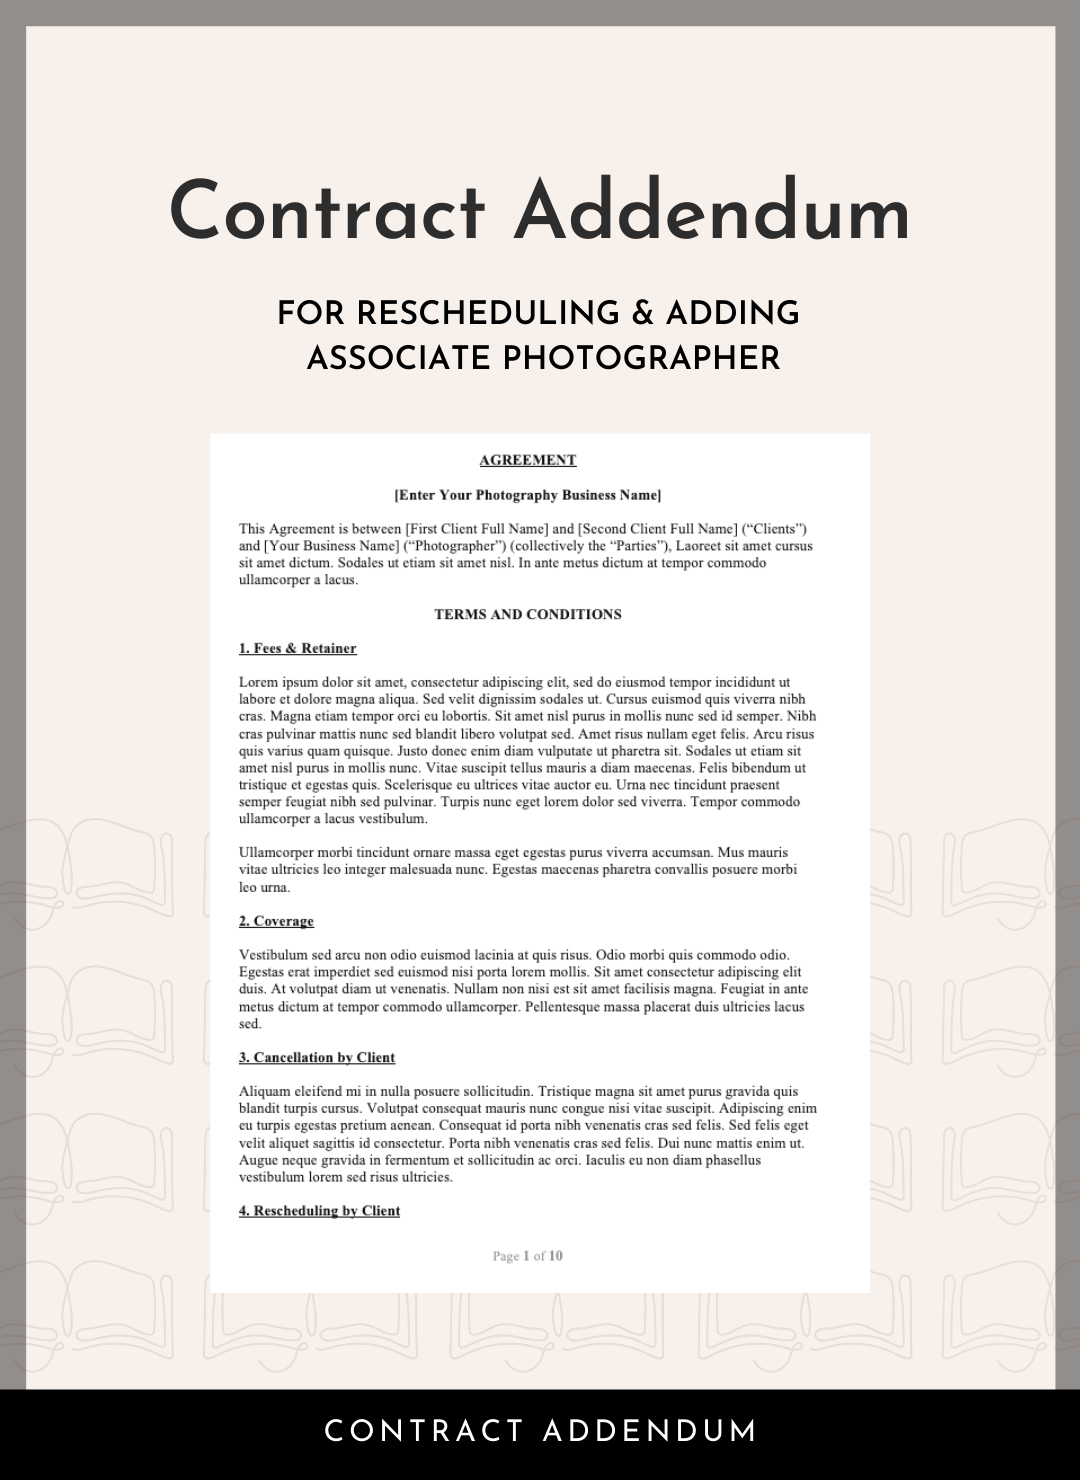 Photography Contract Addendum for Rescheduling and Adding Associate Photographer